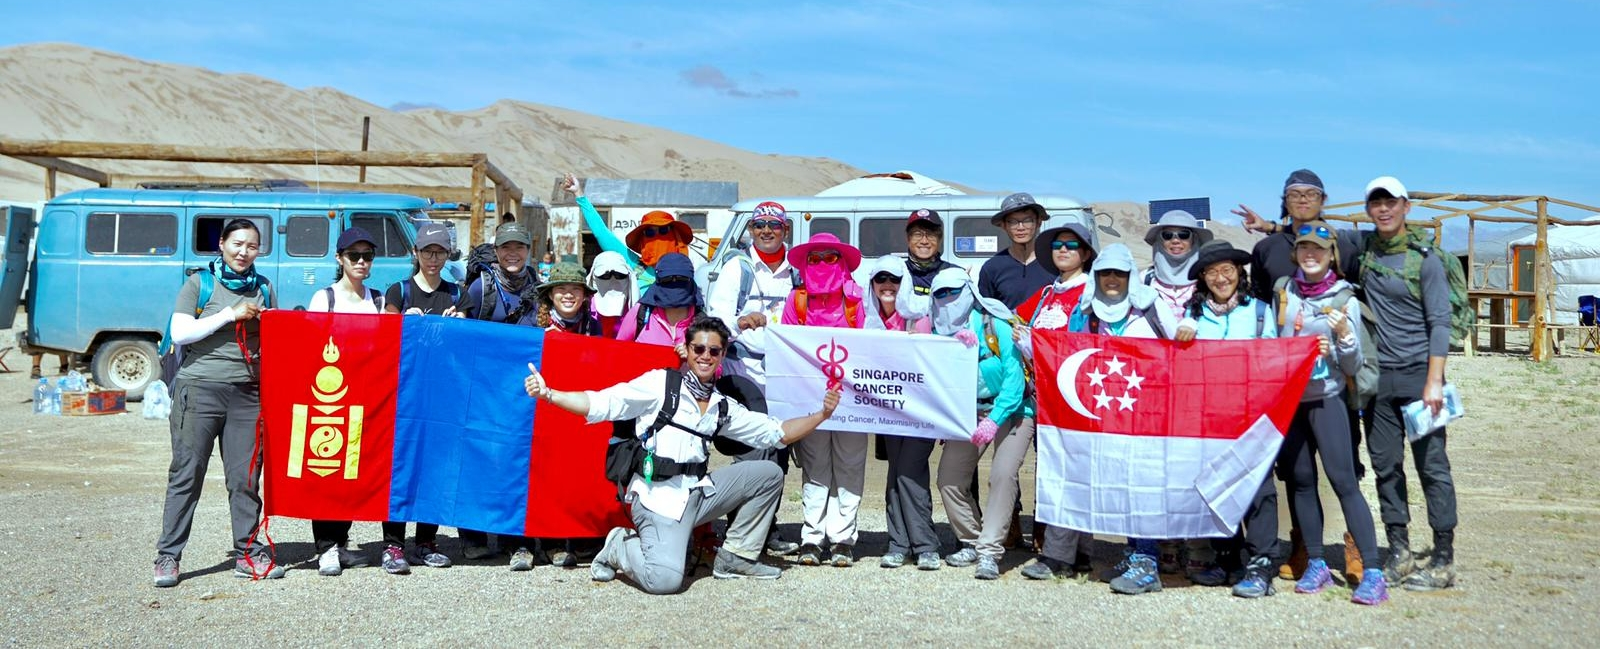 Scott celebrated the end of his 800km trek by raising funds for the Singapore Cancer Society.